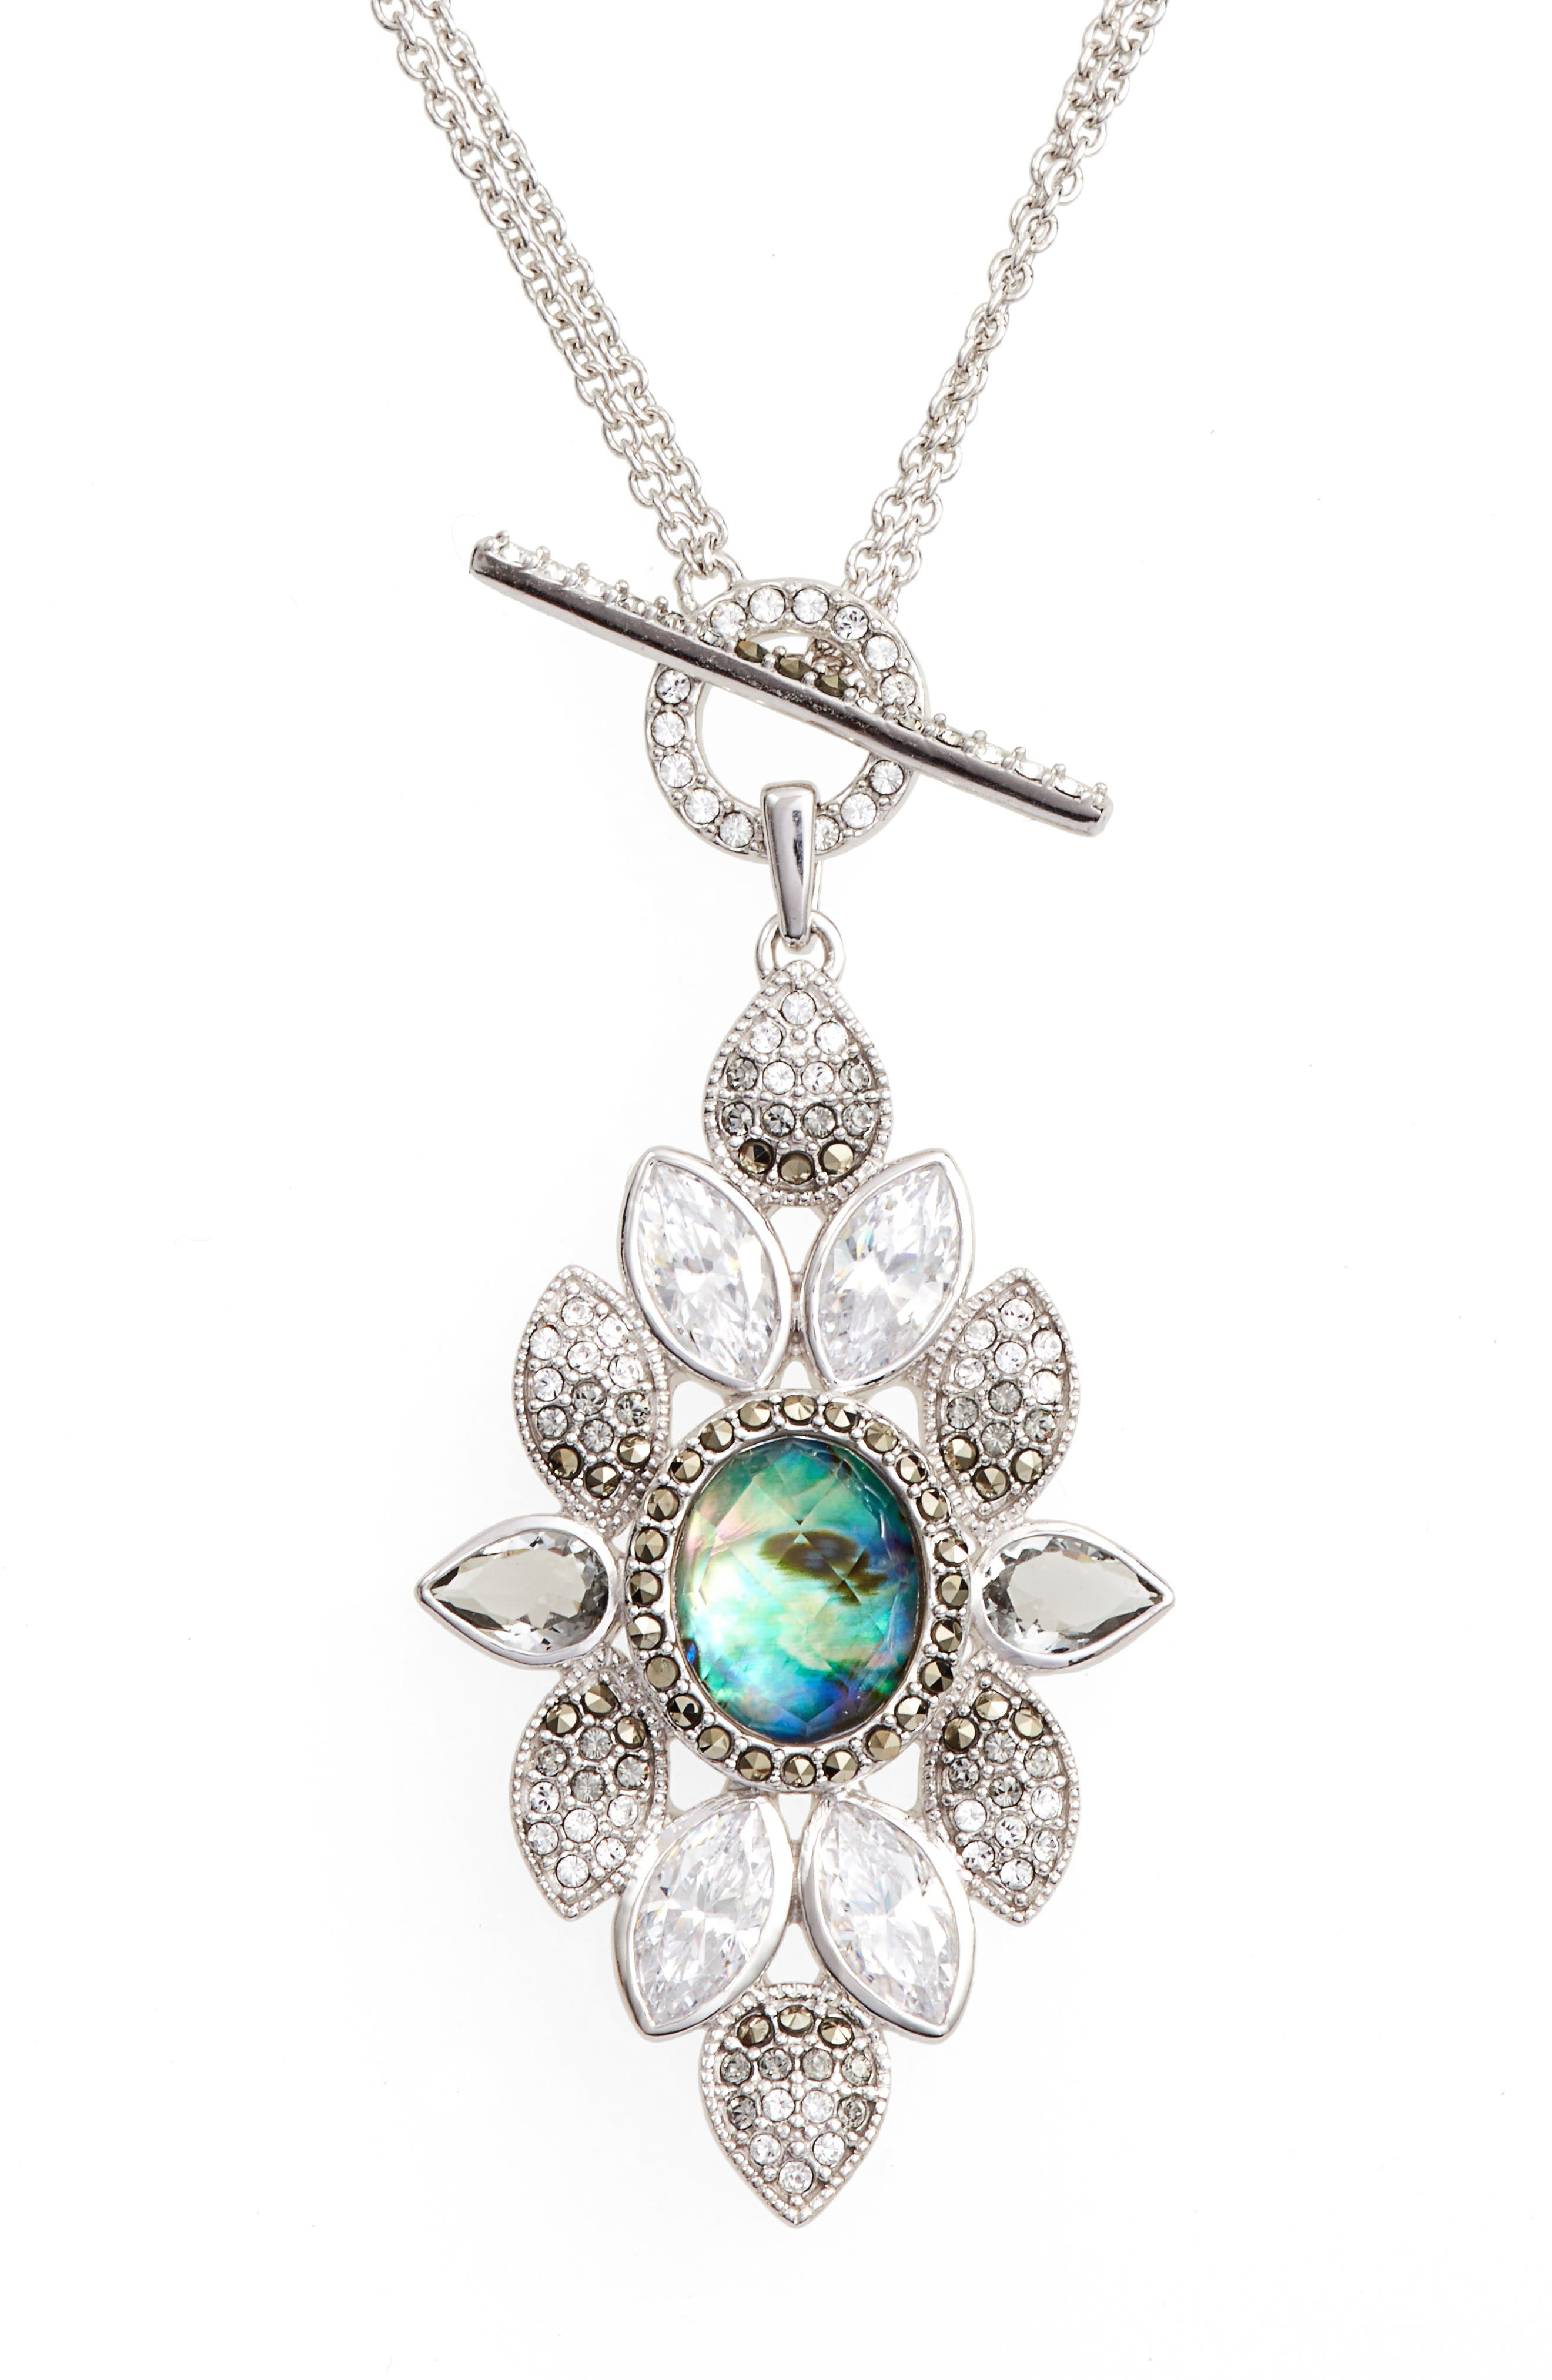 Crystal Pendant Necklace,                             Main thumbnail 1, color,                             400